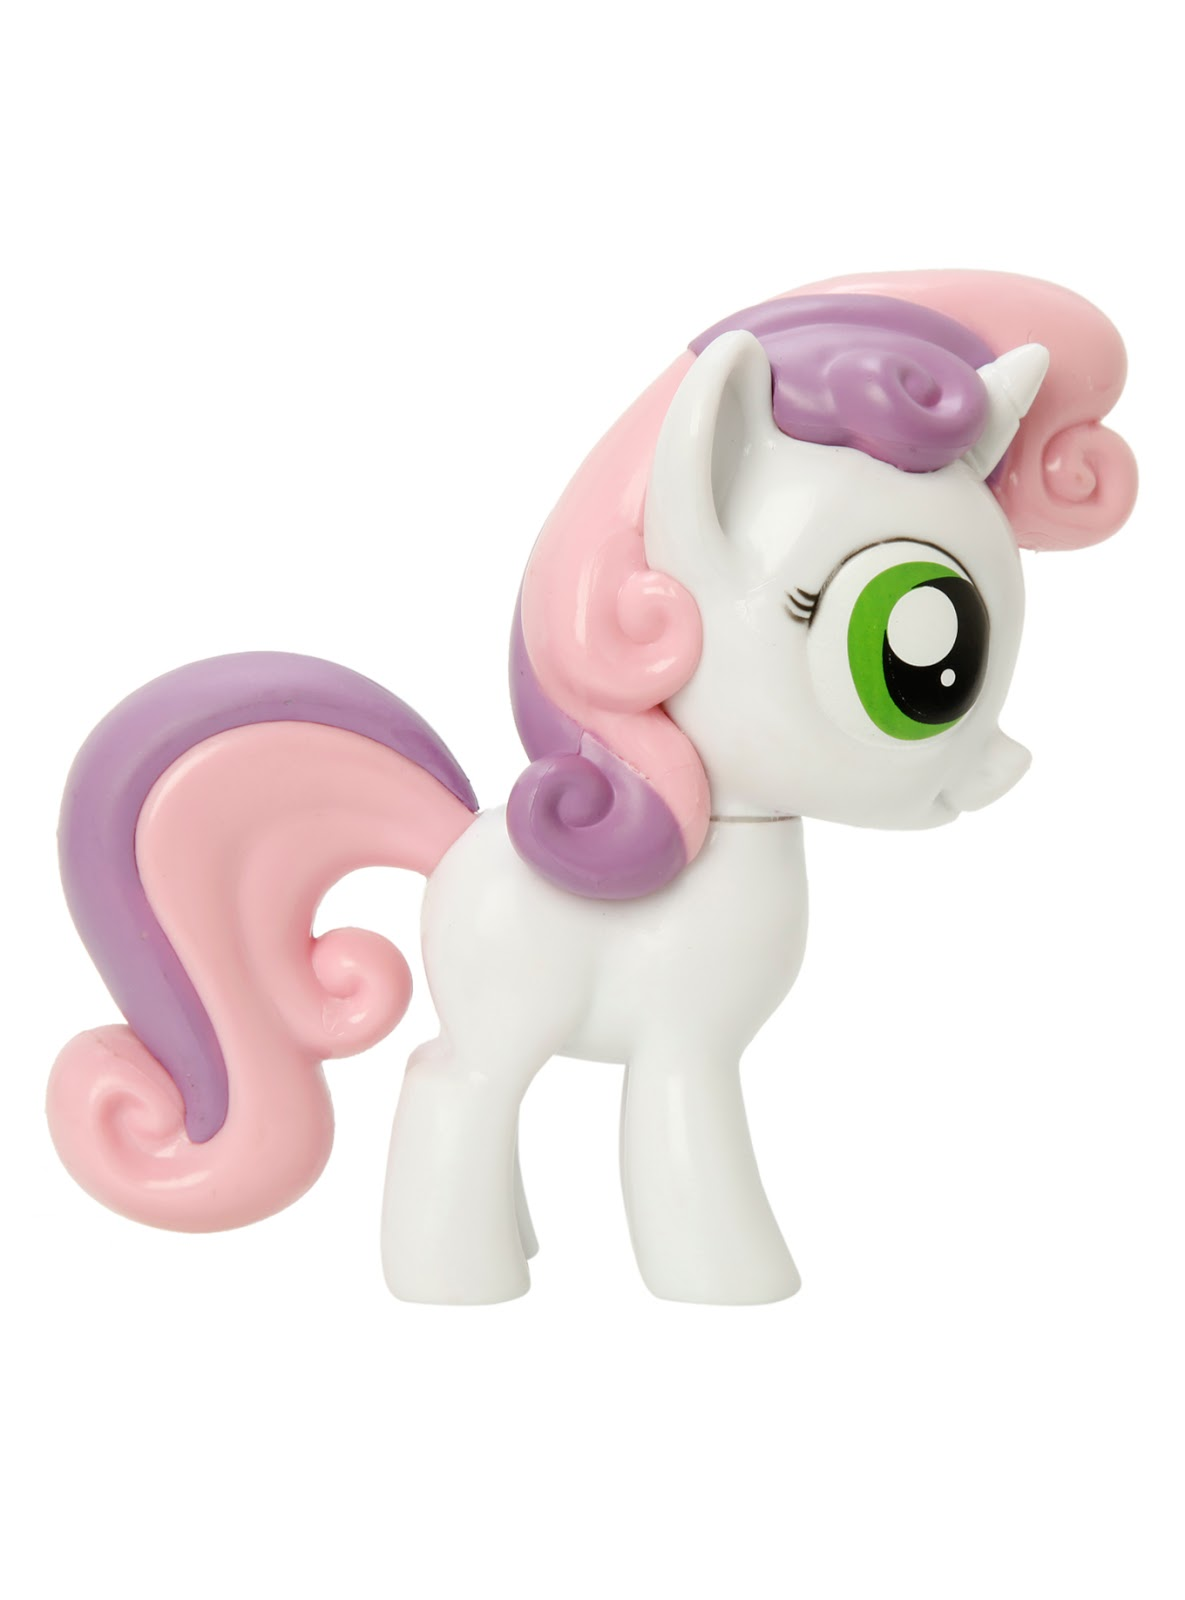 Funko Cmc Now Available On Hot Topic Website Mlp Merch